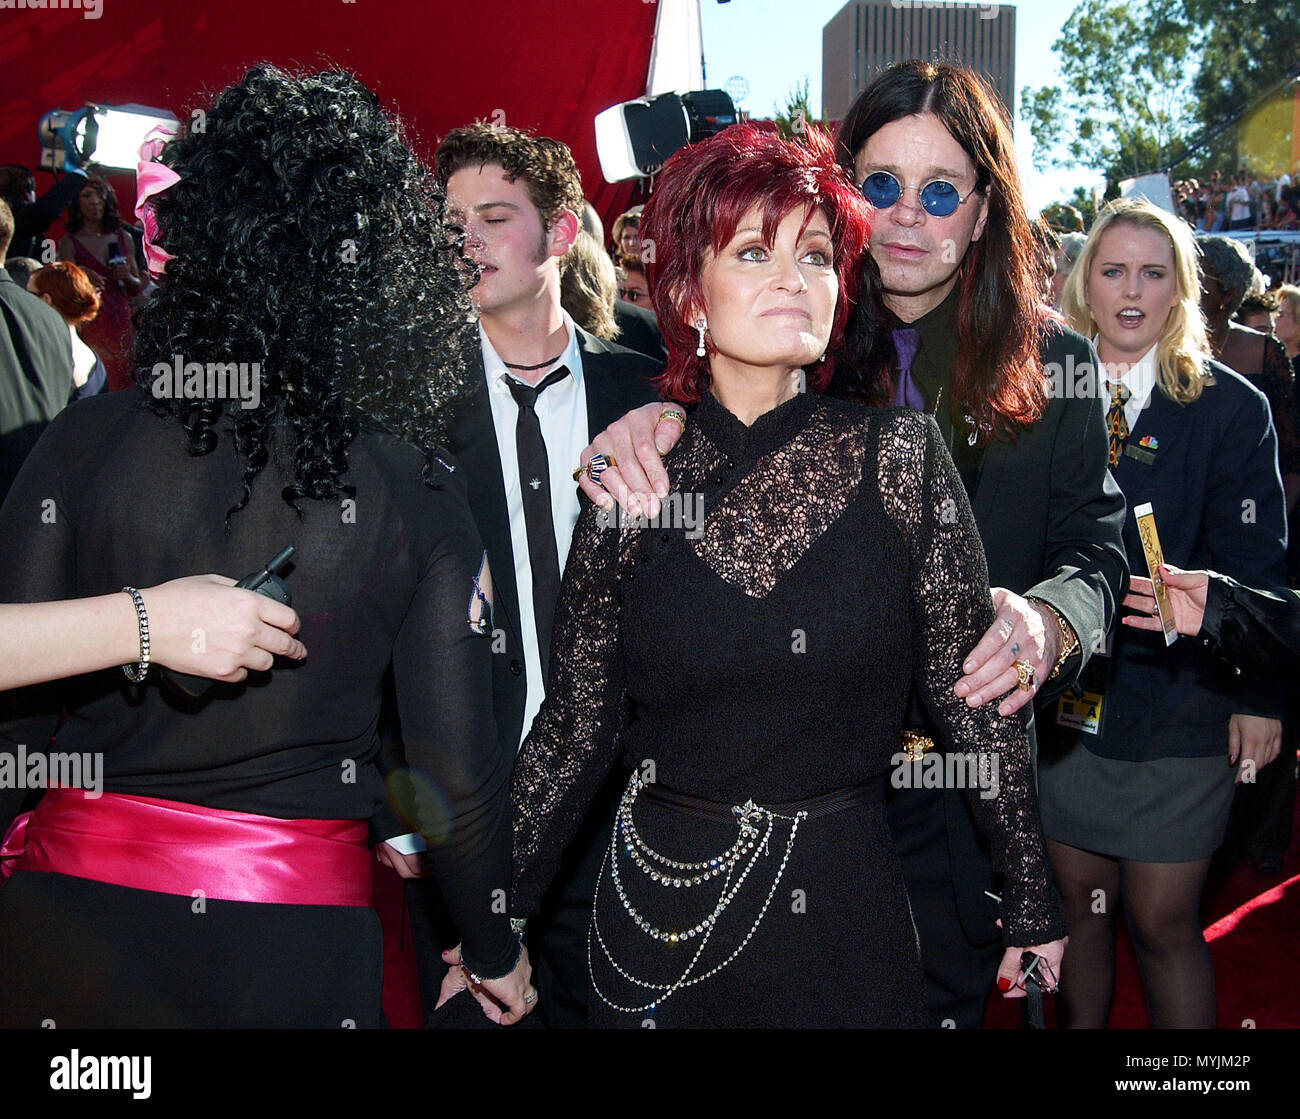 The Osbourne family -Kelly, Sharon and Ozzie - arriving at the 54th Annual Primetime Emmy Awards at the Shrine Auditorium in Los Angeles. September 22, 2002.          -            Osbourne_family74.jpgOsbourne_family74  Event in Hollywood Life - California, Red Carpet Event, USA, Film Industry, Celebrities, Photography, Bestof, Arts Culture and Entertainment, Topix Celebrities fashion, Best of, Hollywood Life, Event in Hollywood Life - California, movie celebrities, TV celebrities, Music celebrities, Topix, Bestof, Arts Culture and Entertainment, Photography,    inquiry tsuni@Gamma-USA.com , C - Stock Image